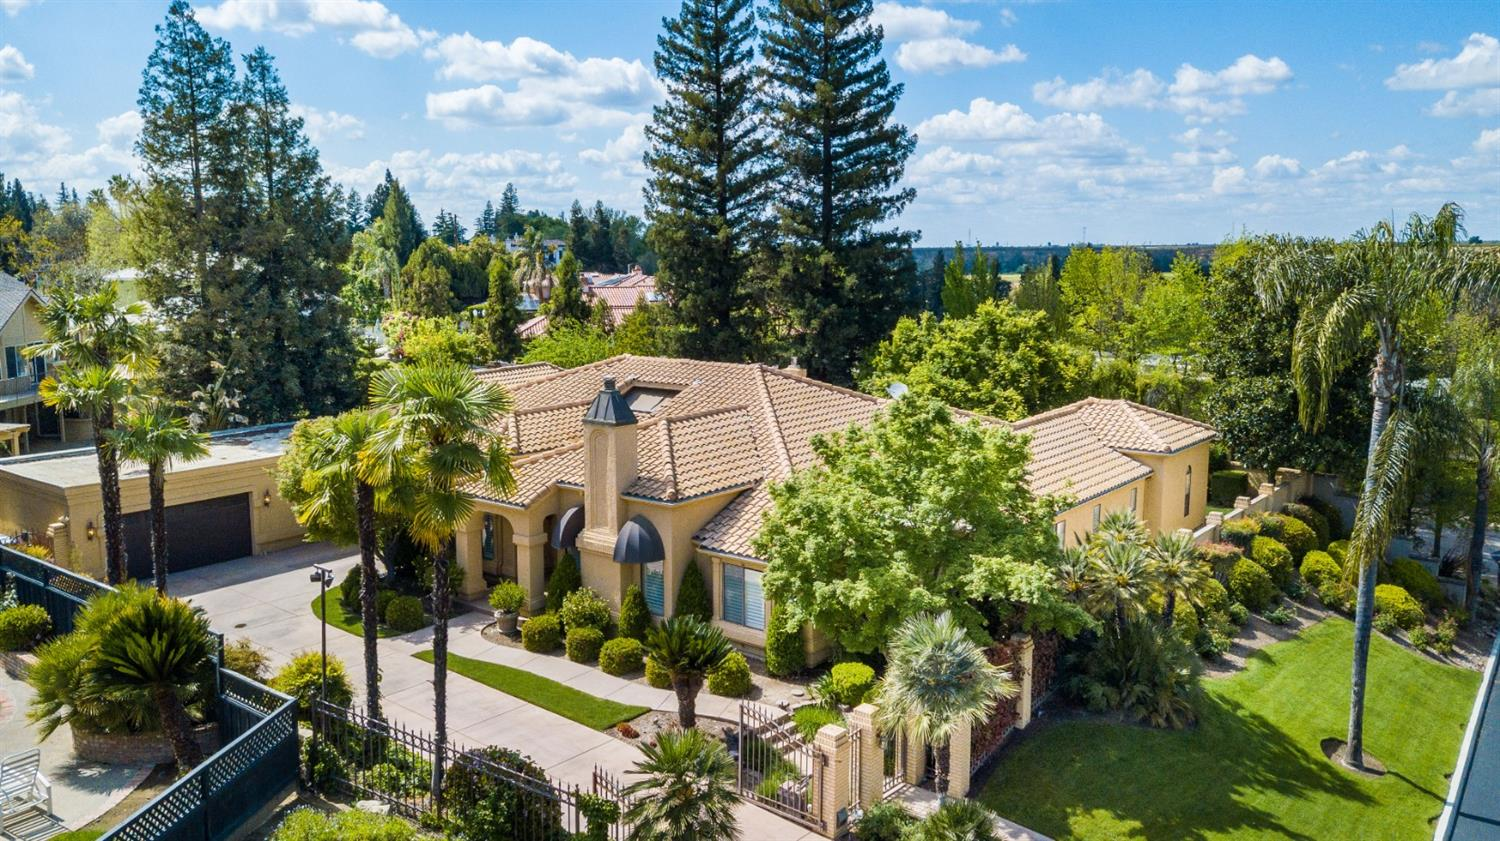 This Elegant gated home is tucked away in a quiet NW neighborhood cul de sac. A remodeled gourmet kitchen with granite counters, farm style & veg sink, gas cooktop with pot filler, pantry, breakfast bar and large eating area are open to the fabulous great room with a beautiful brick fireplace, entertainment wall which conceals a walk-in wet bar with custom cabinets & as a bonus, a glass walled serene indoor atrium, which is also viewed by the formal living & dining room. A spacious master suite offers a view with sliding glass door to lush yard, high ceilings, two walk-in closets & private bath with jetted tub, shower and db sinks. Two spacious guest rooms share a bathroom with db sinks and shower over tub. An isolated 4th bedroom is designed as an office.The backyard wraps around the house and offers a variety of plants and trees, a shimmering pool & water fall,& cabana. A 4+ car garage (1584 sq ft) offers walk-In storage & built-in workbench with cabinets. Call today!